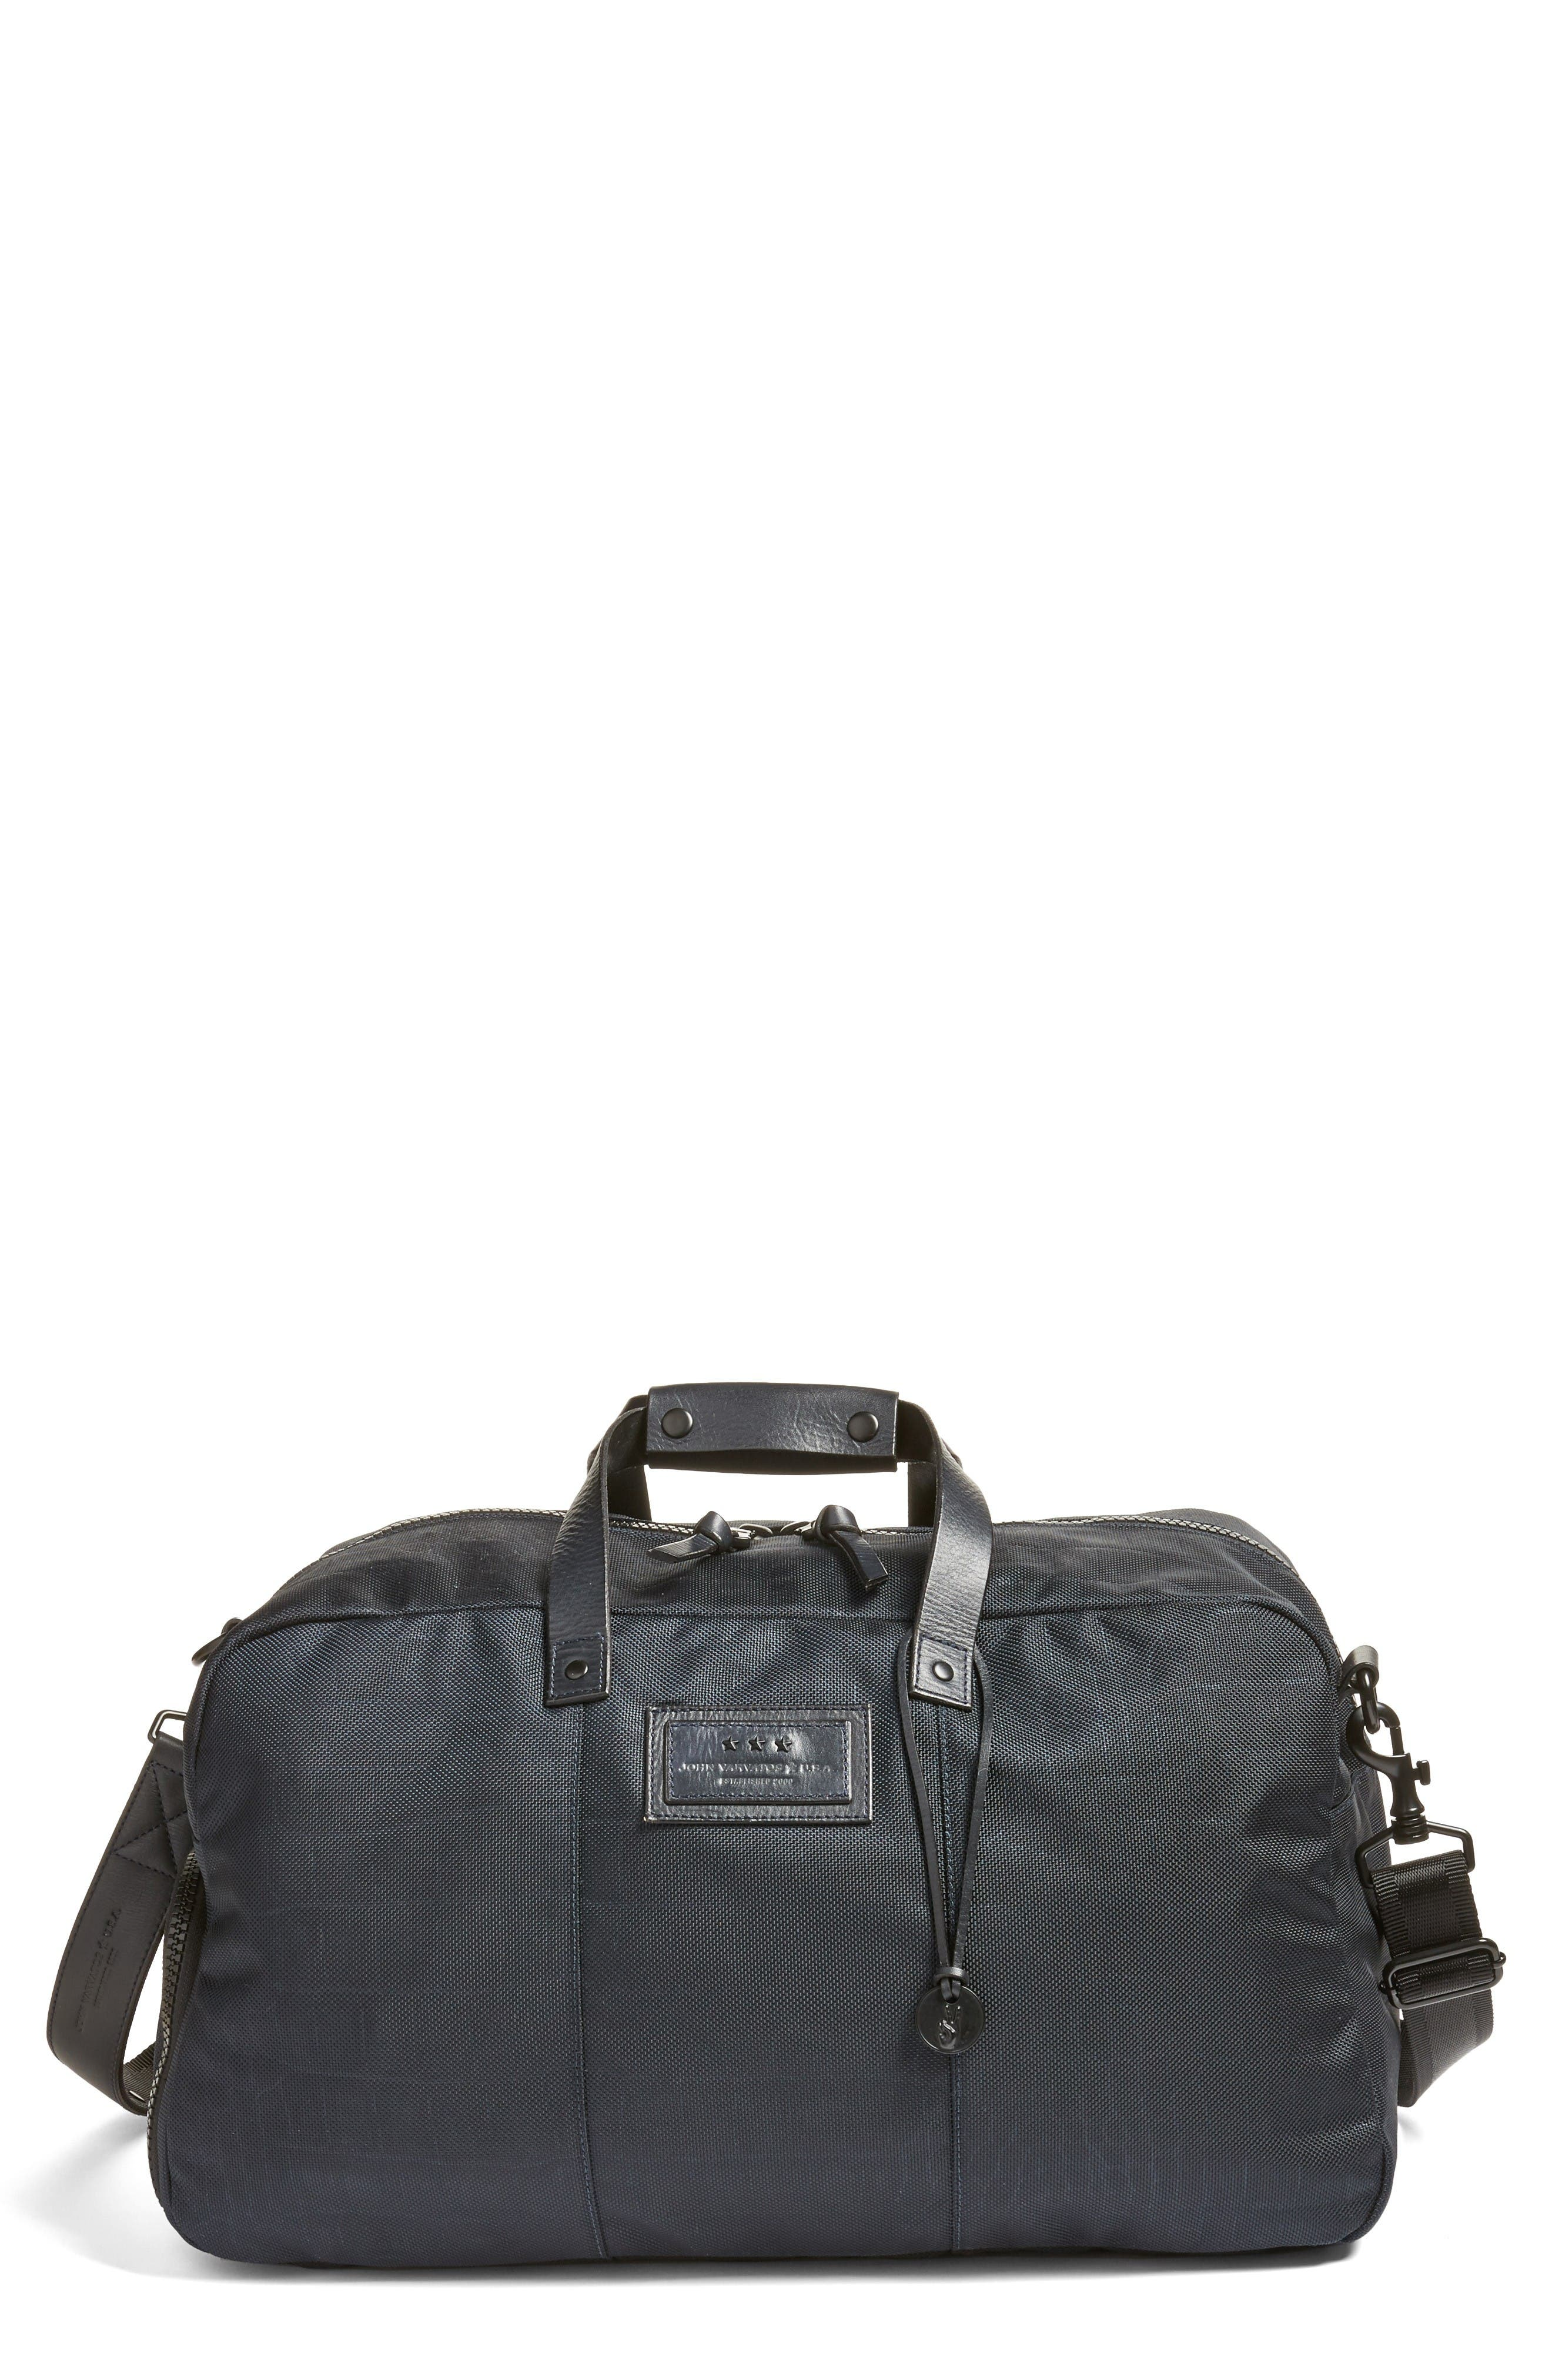 Duffel Bag,                             Main thumbnail 1, color,                             Navy